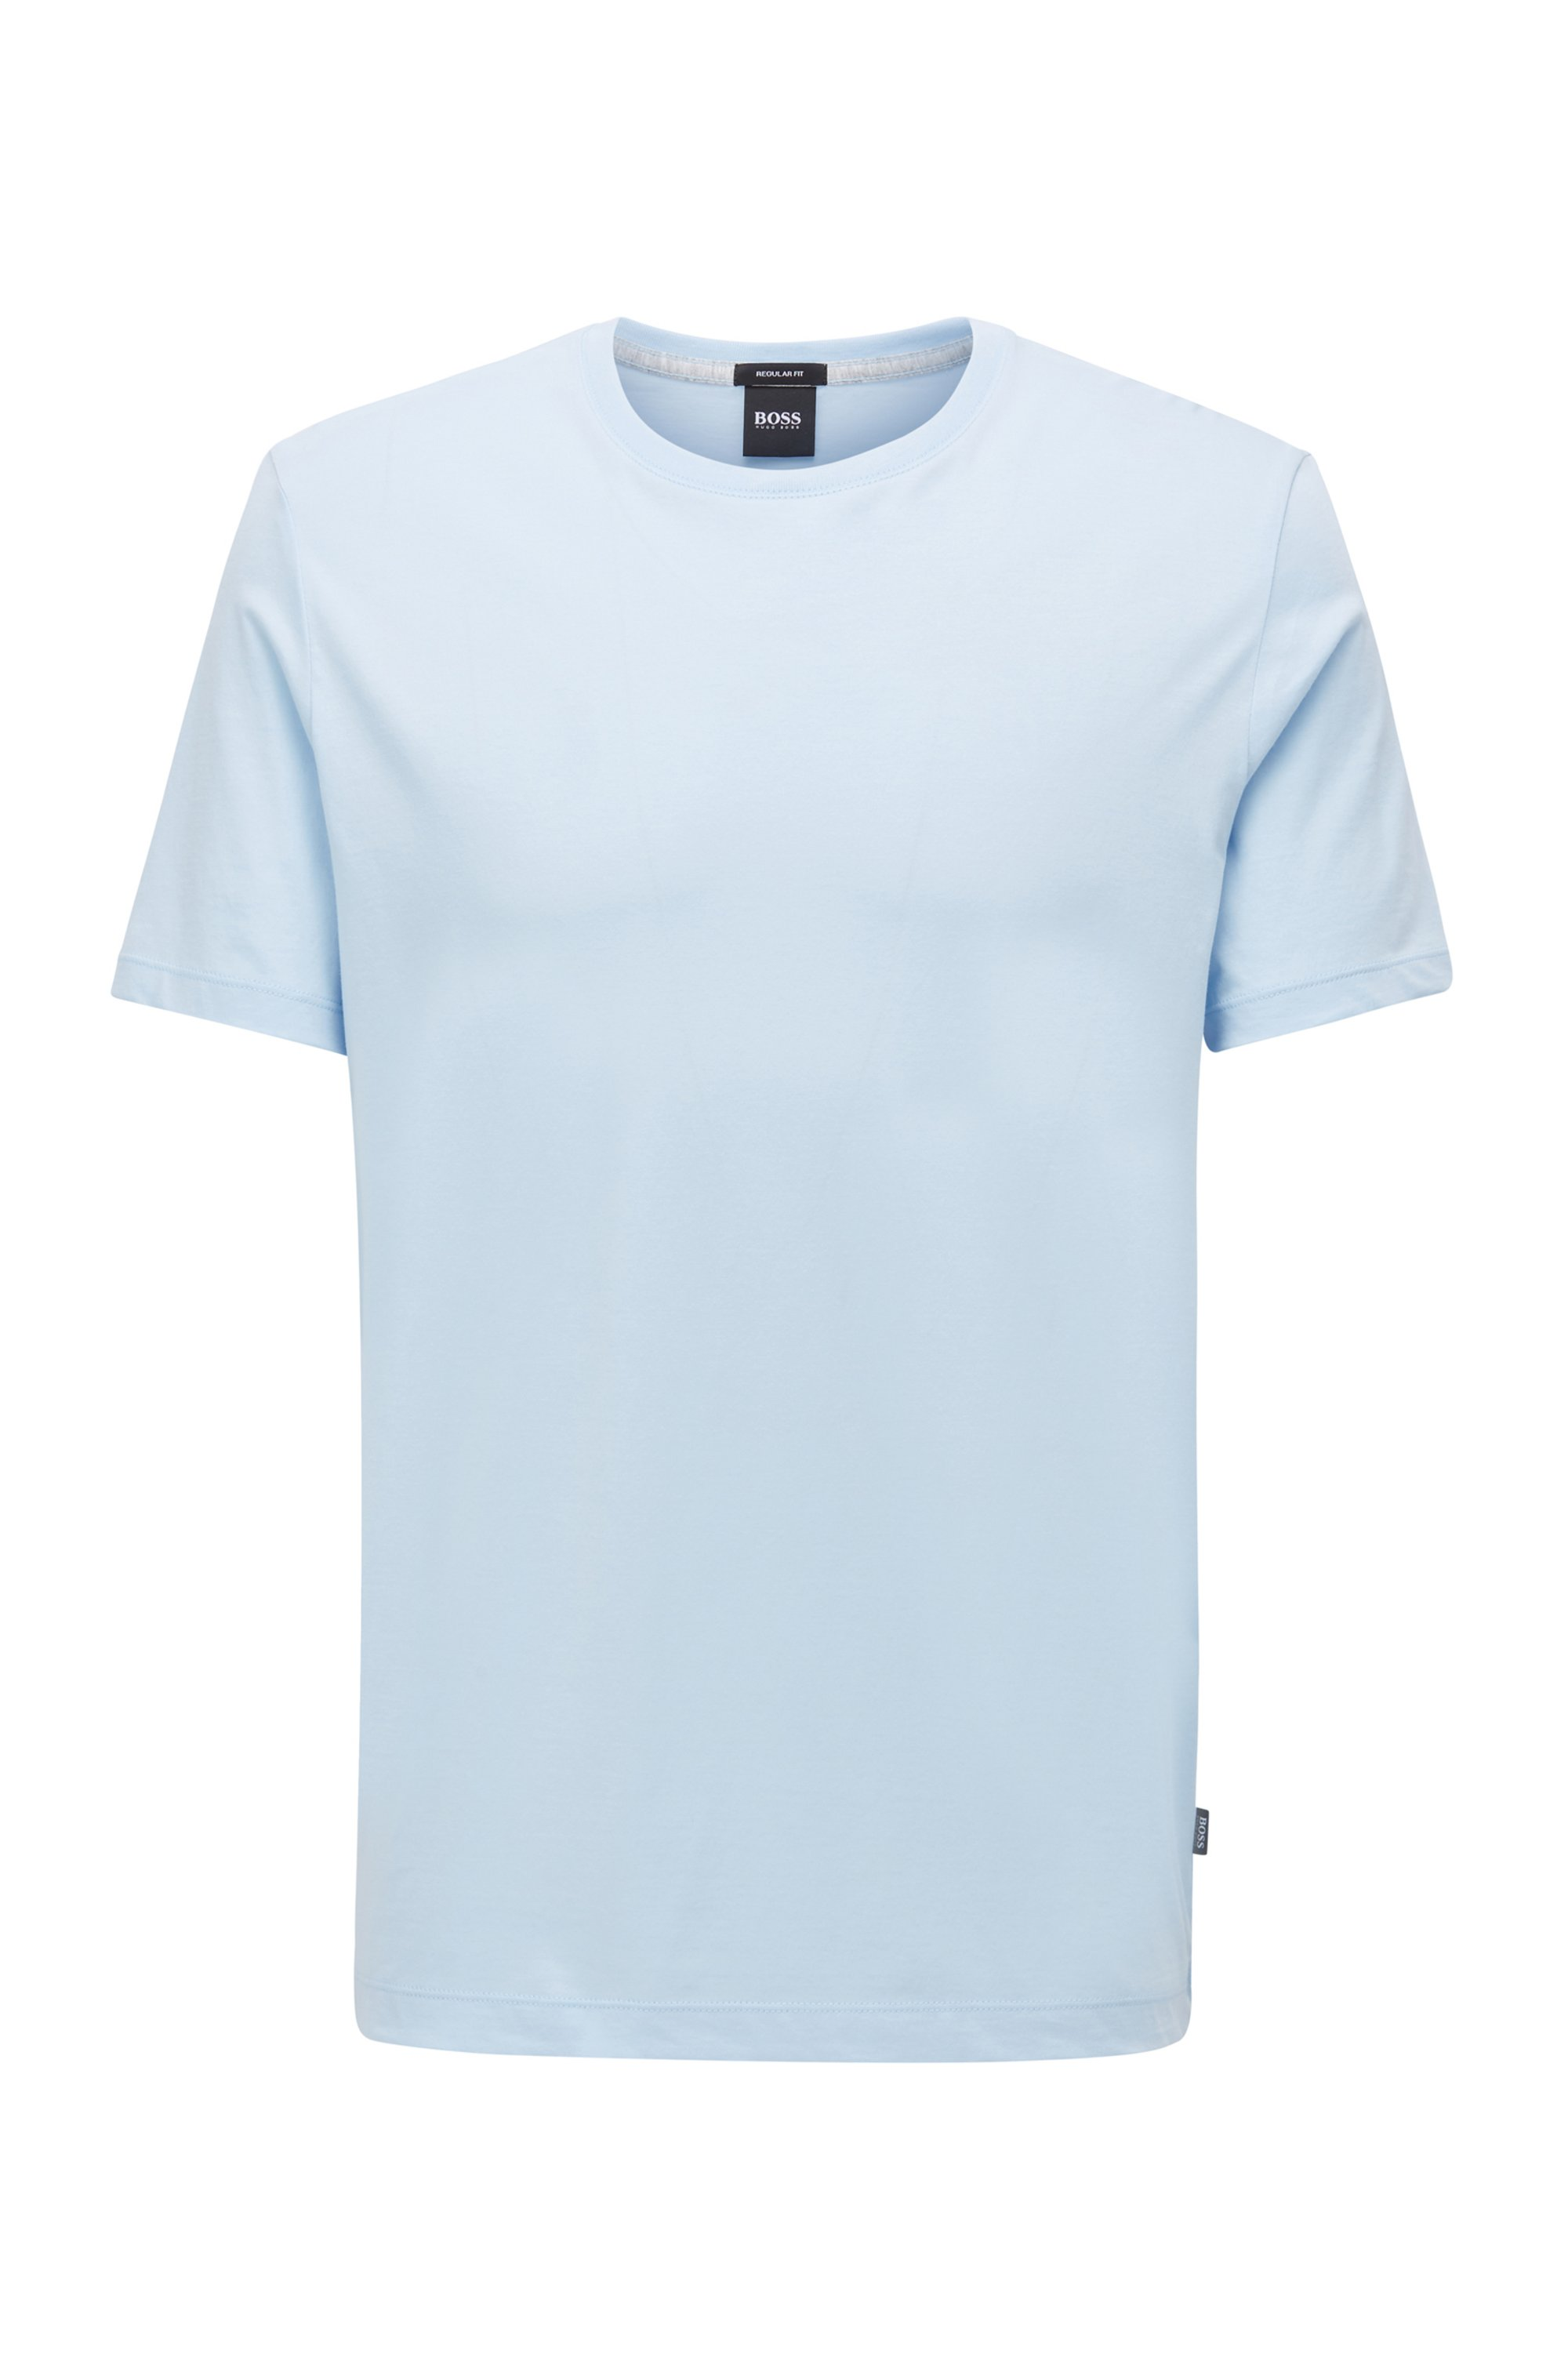 Crew-neck T-shirt in pure cotton with liquid finishing, Light Blue